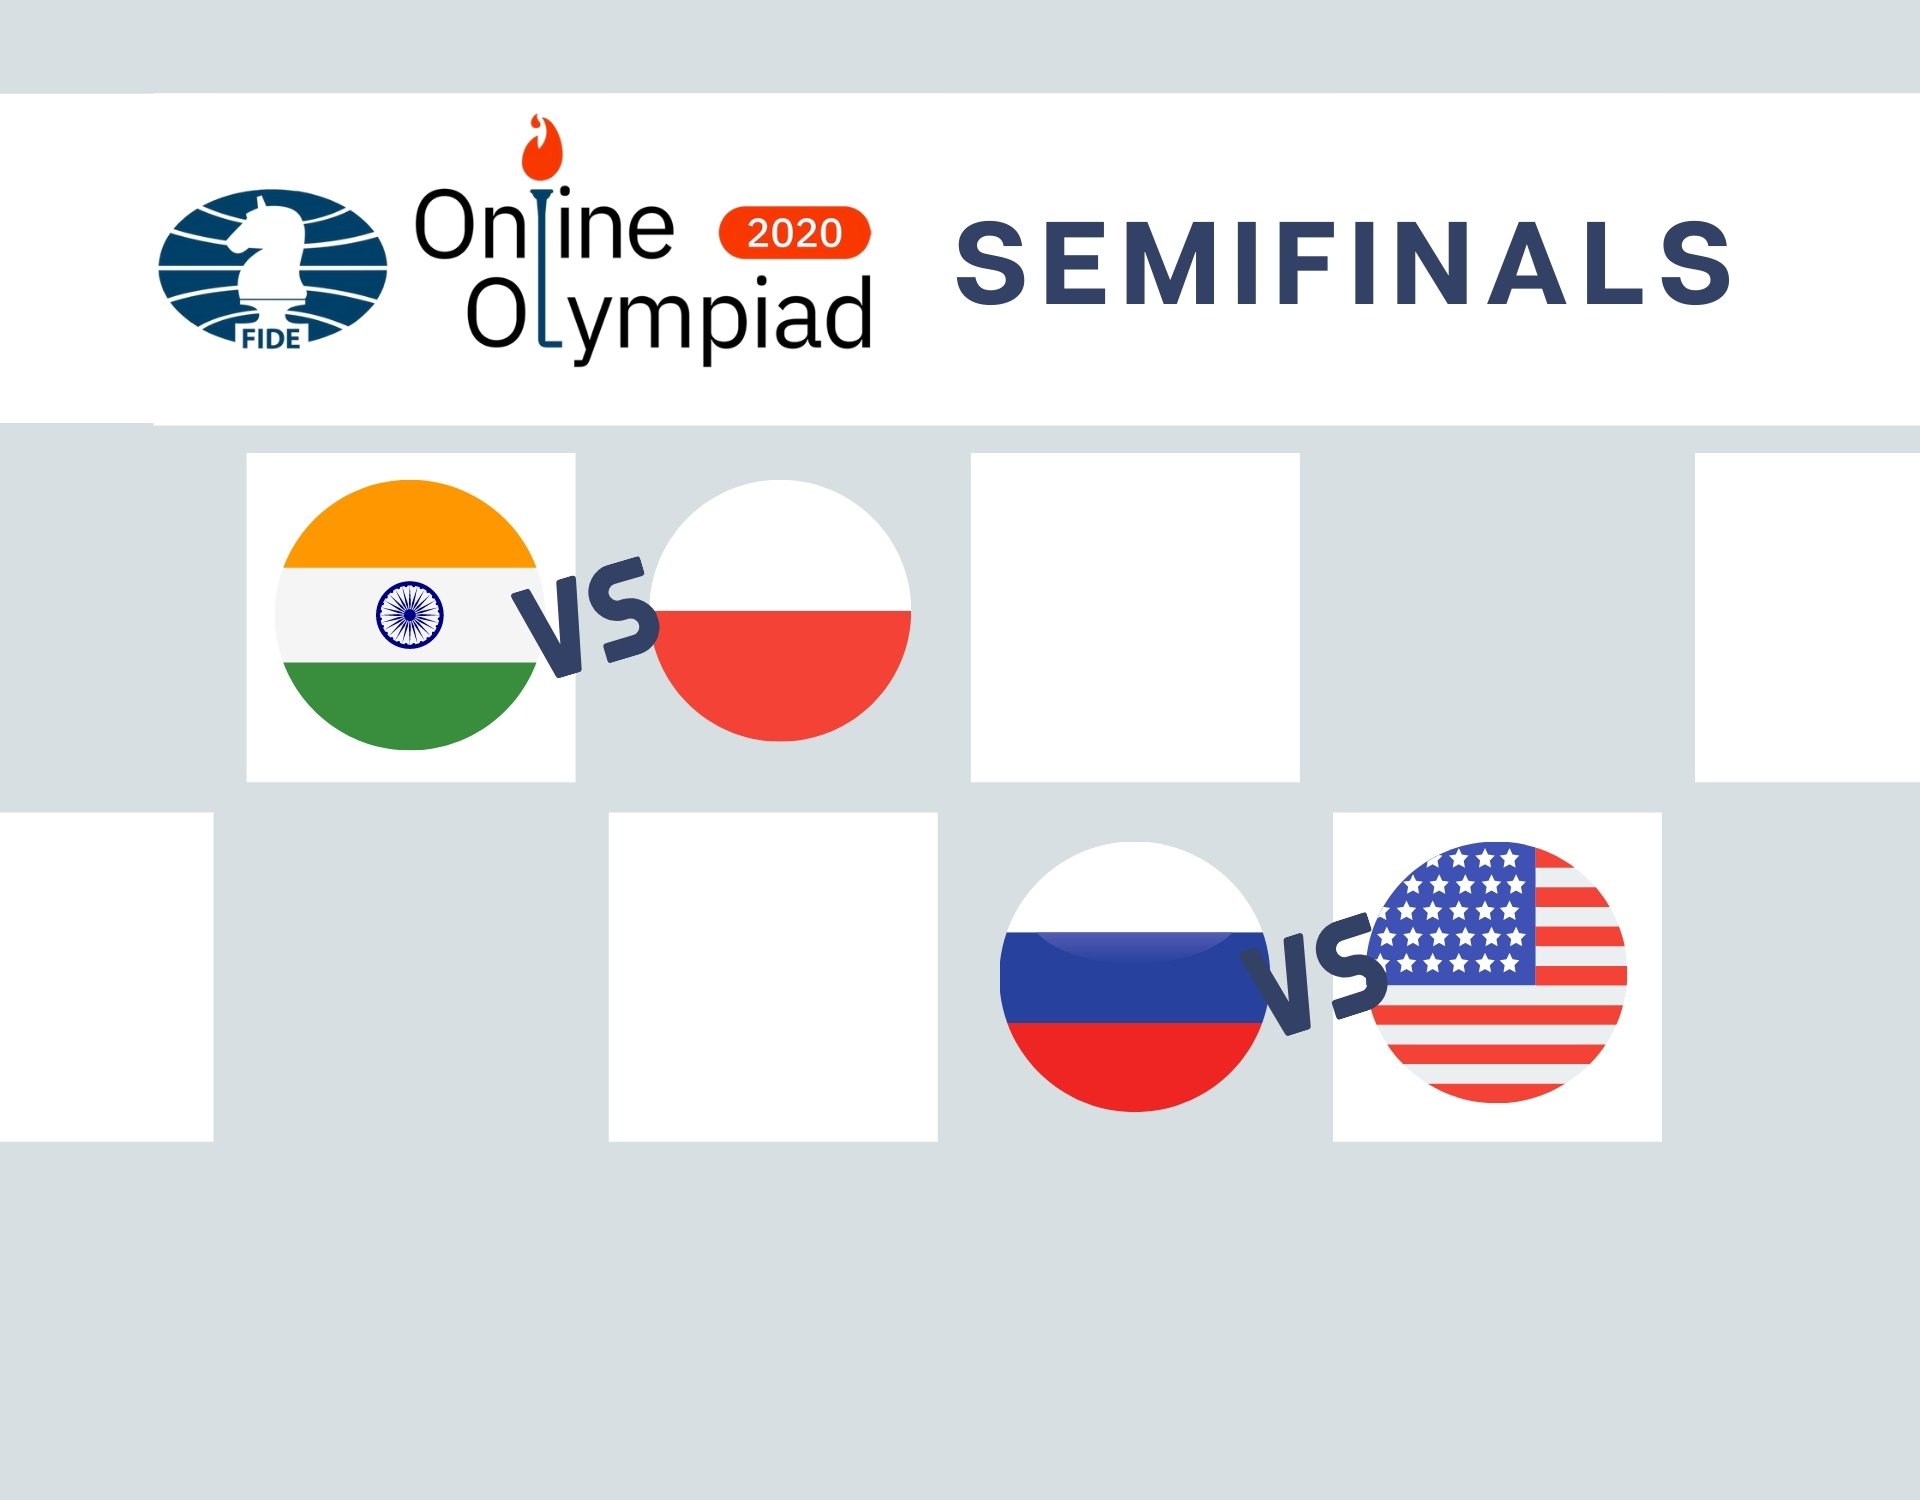 FIDE Online Olympiad: India and Russia meet in the final